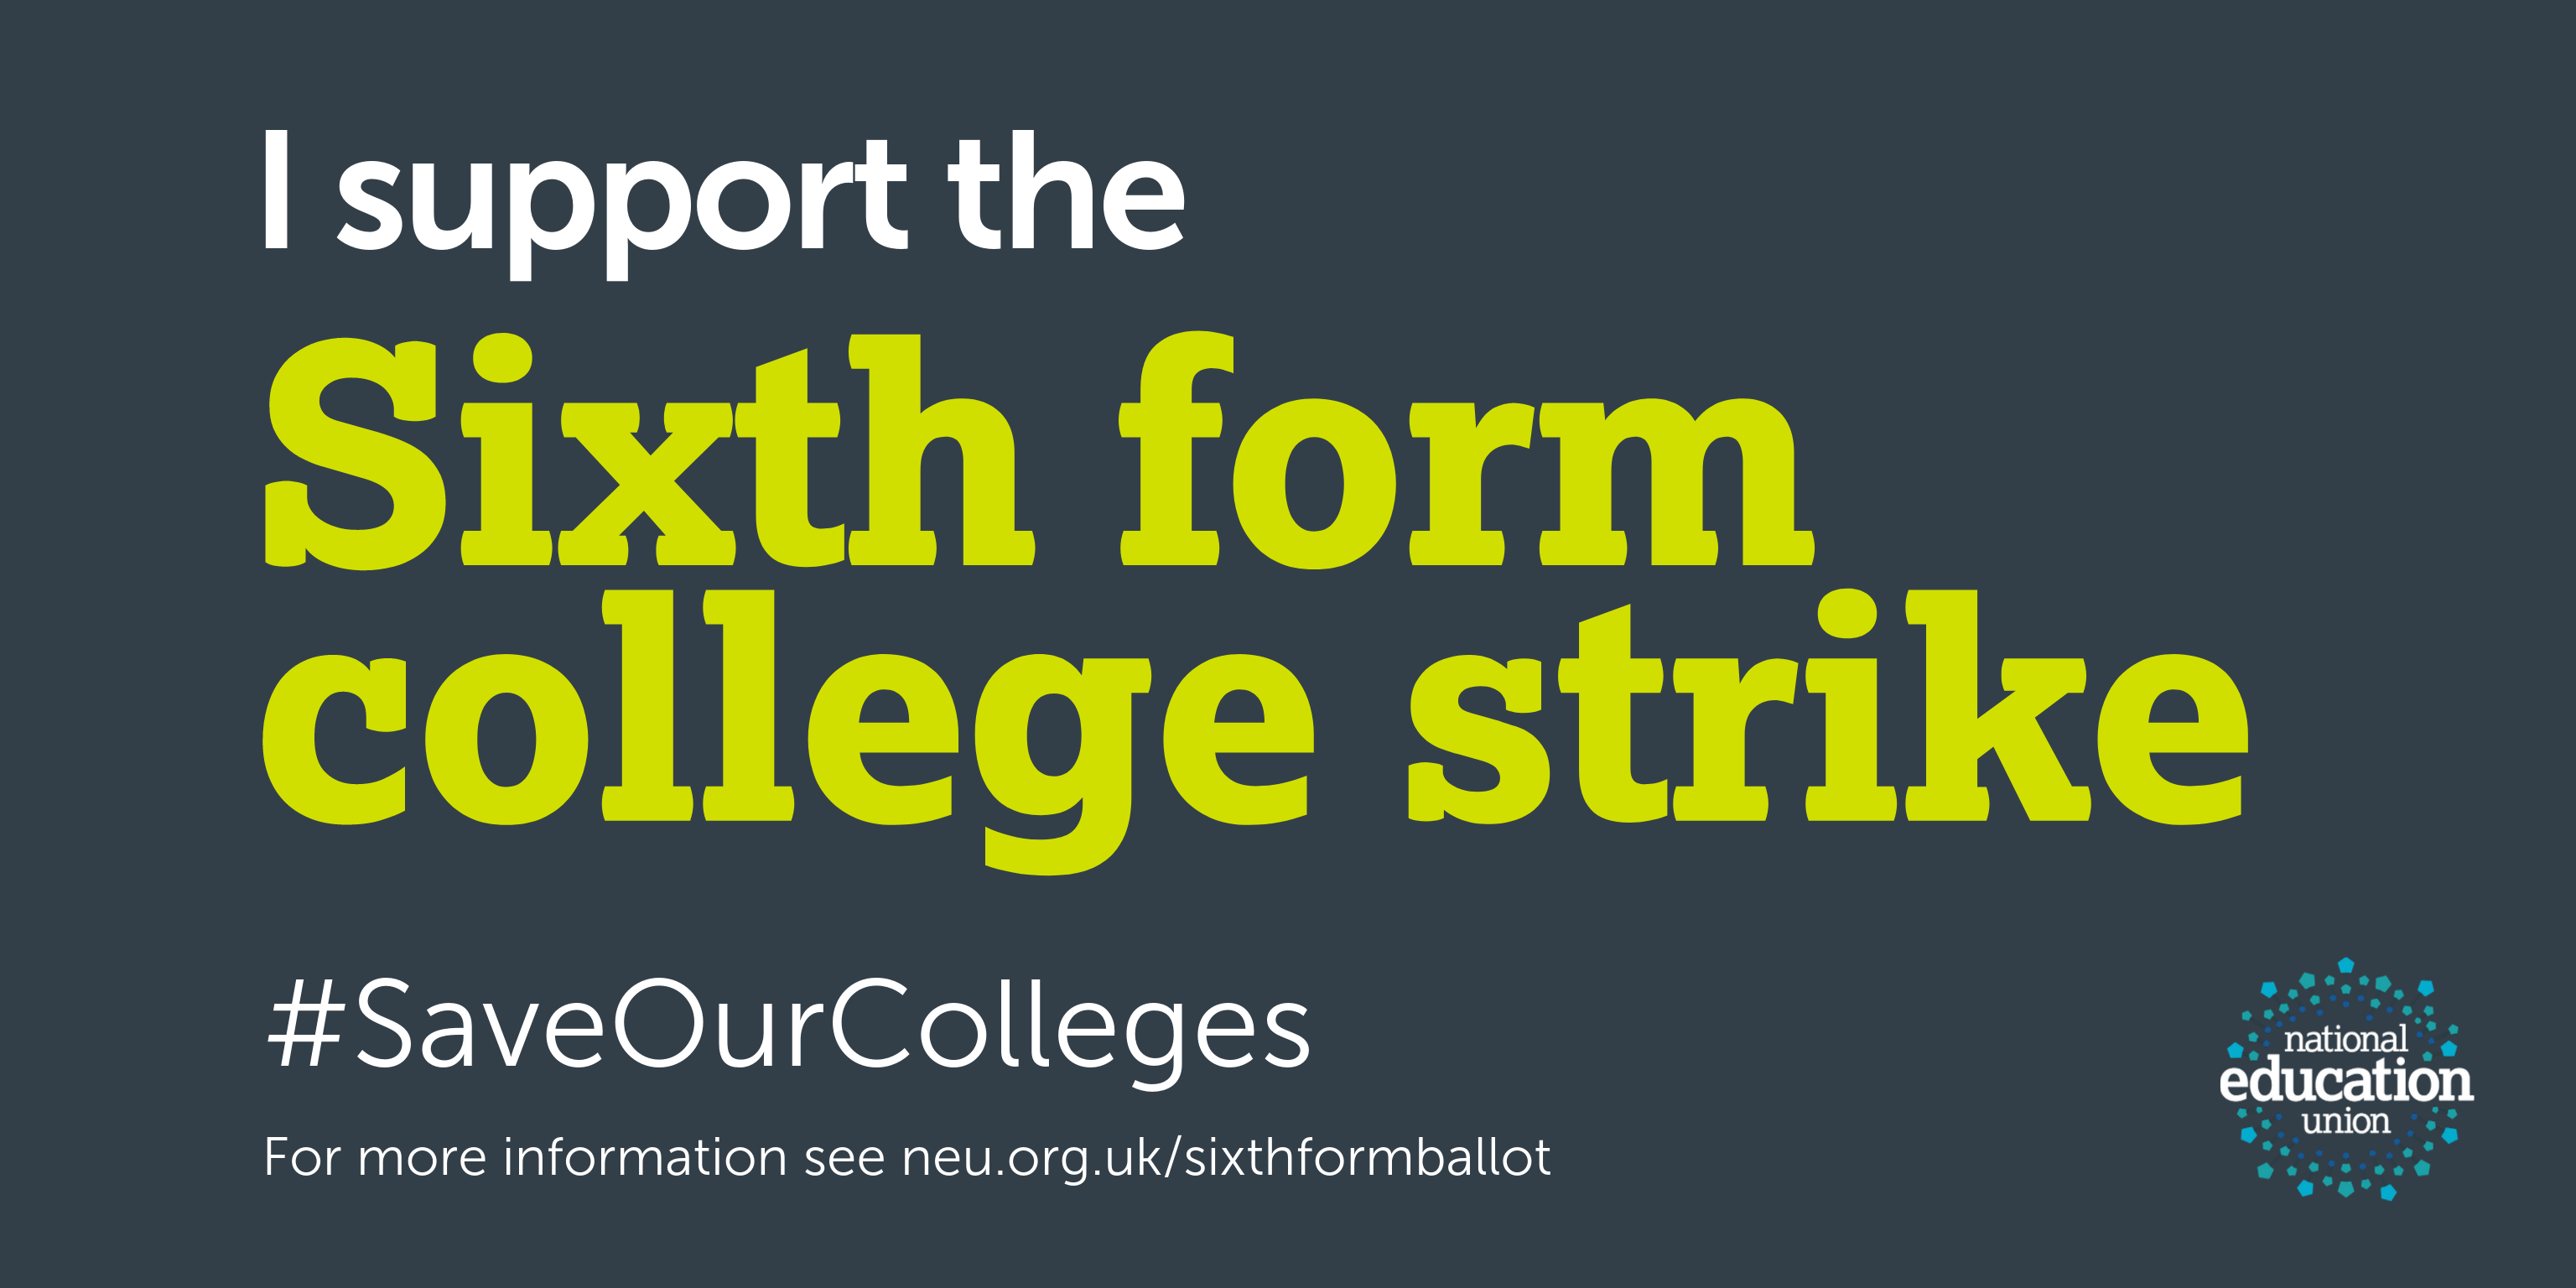 Sixth form colleges strike support Twitter card